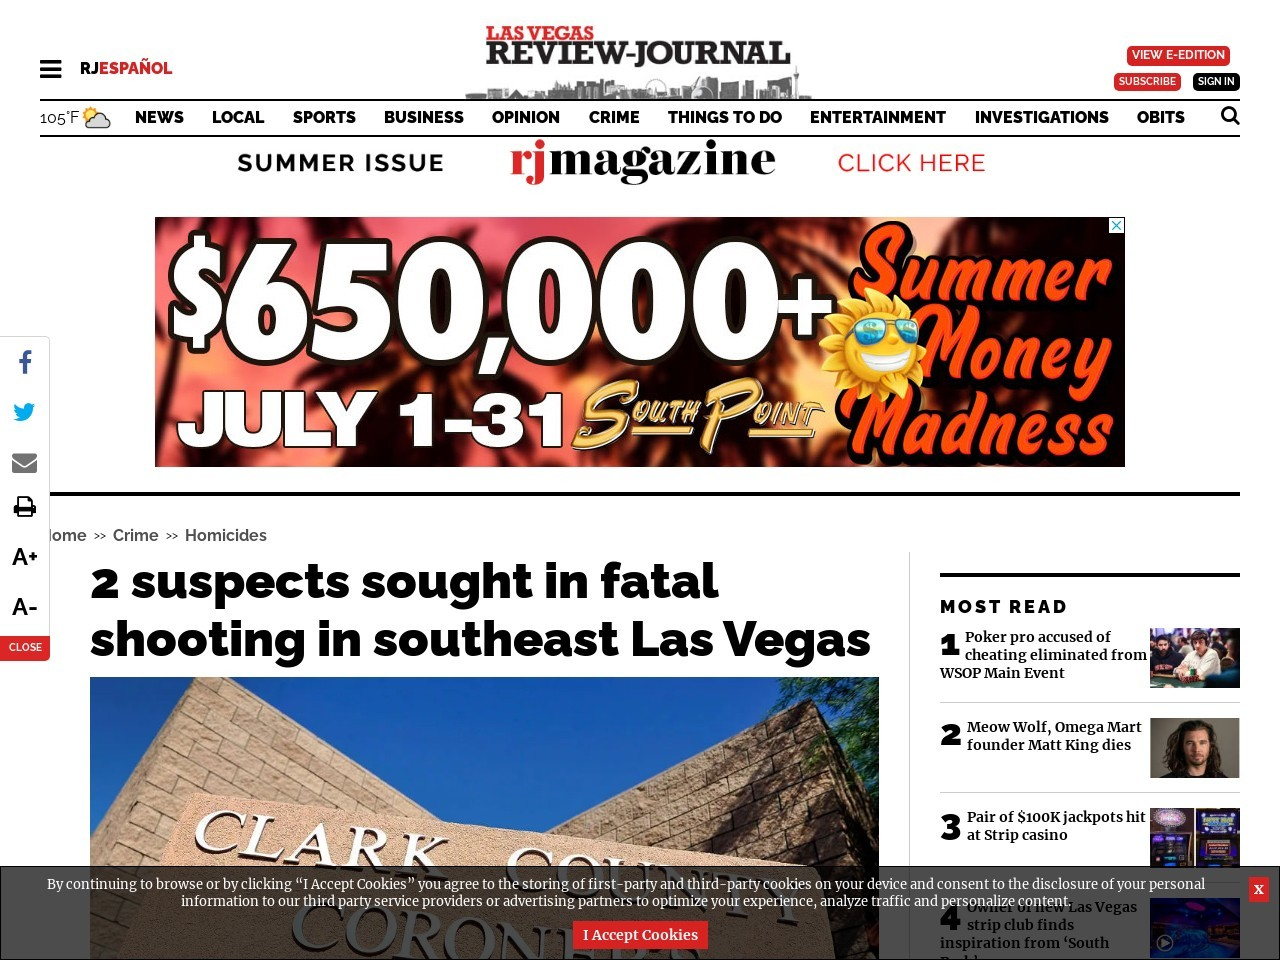 2 suspects sought in fatal shooting in southeast Las Vegas